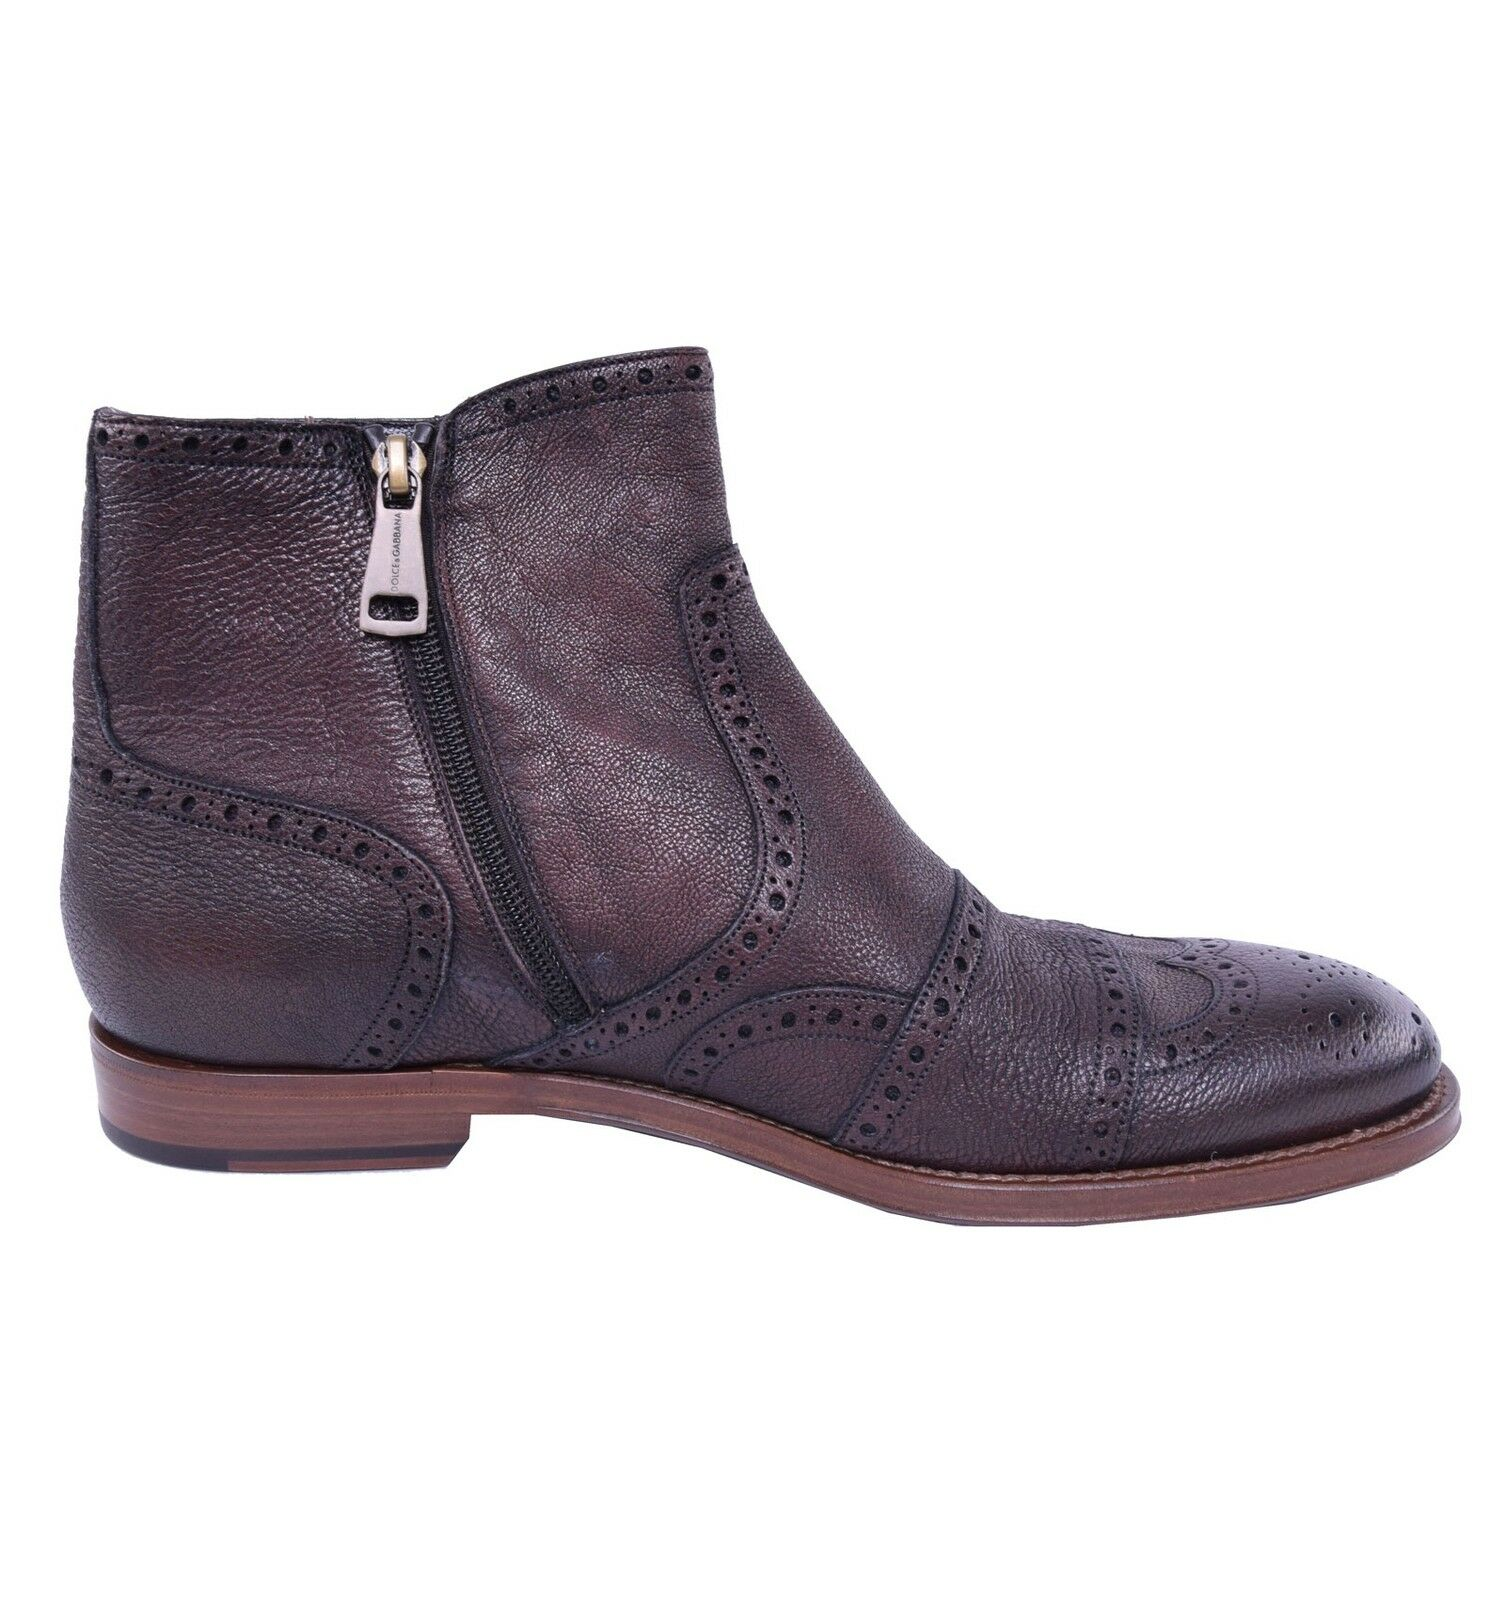 Dolce & gabbana leather deer business boots shoes braun boots 03823